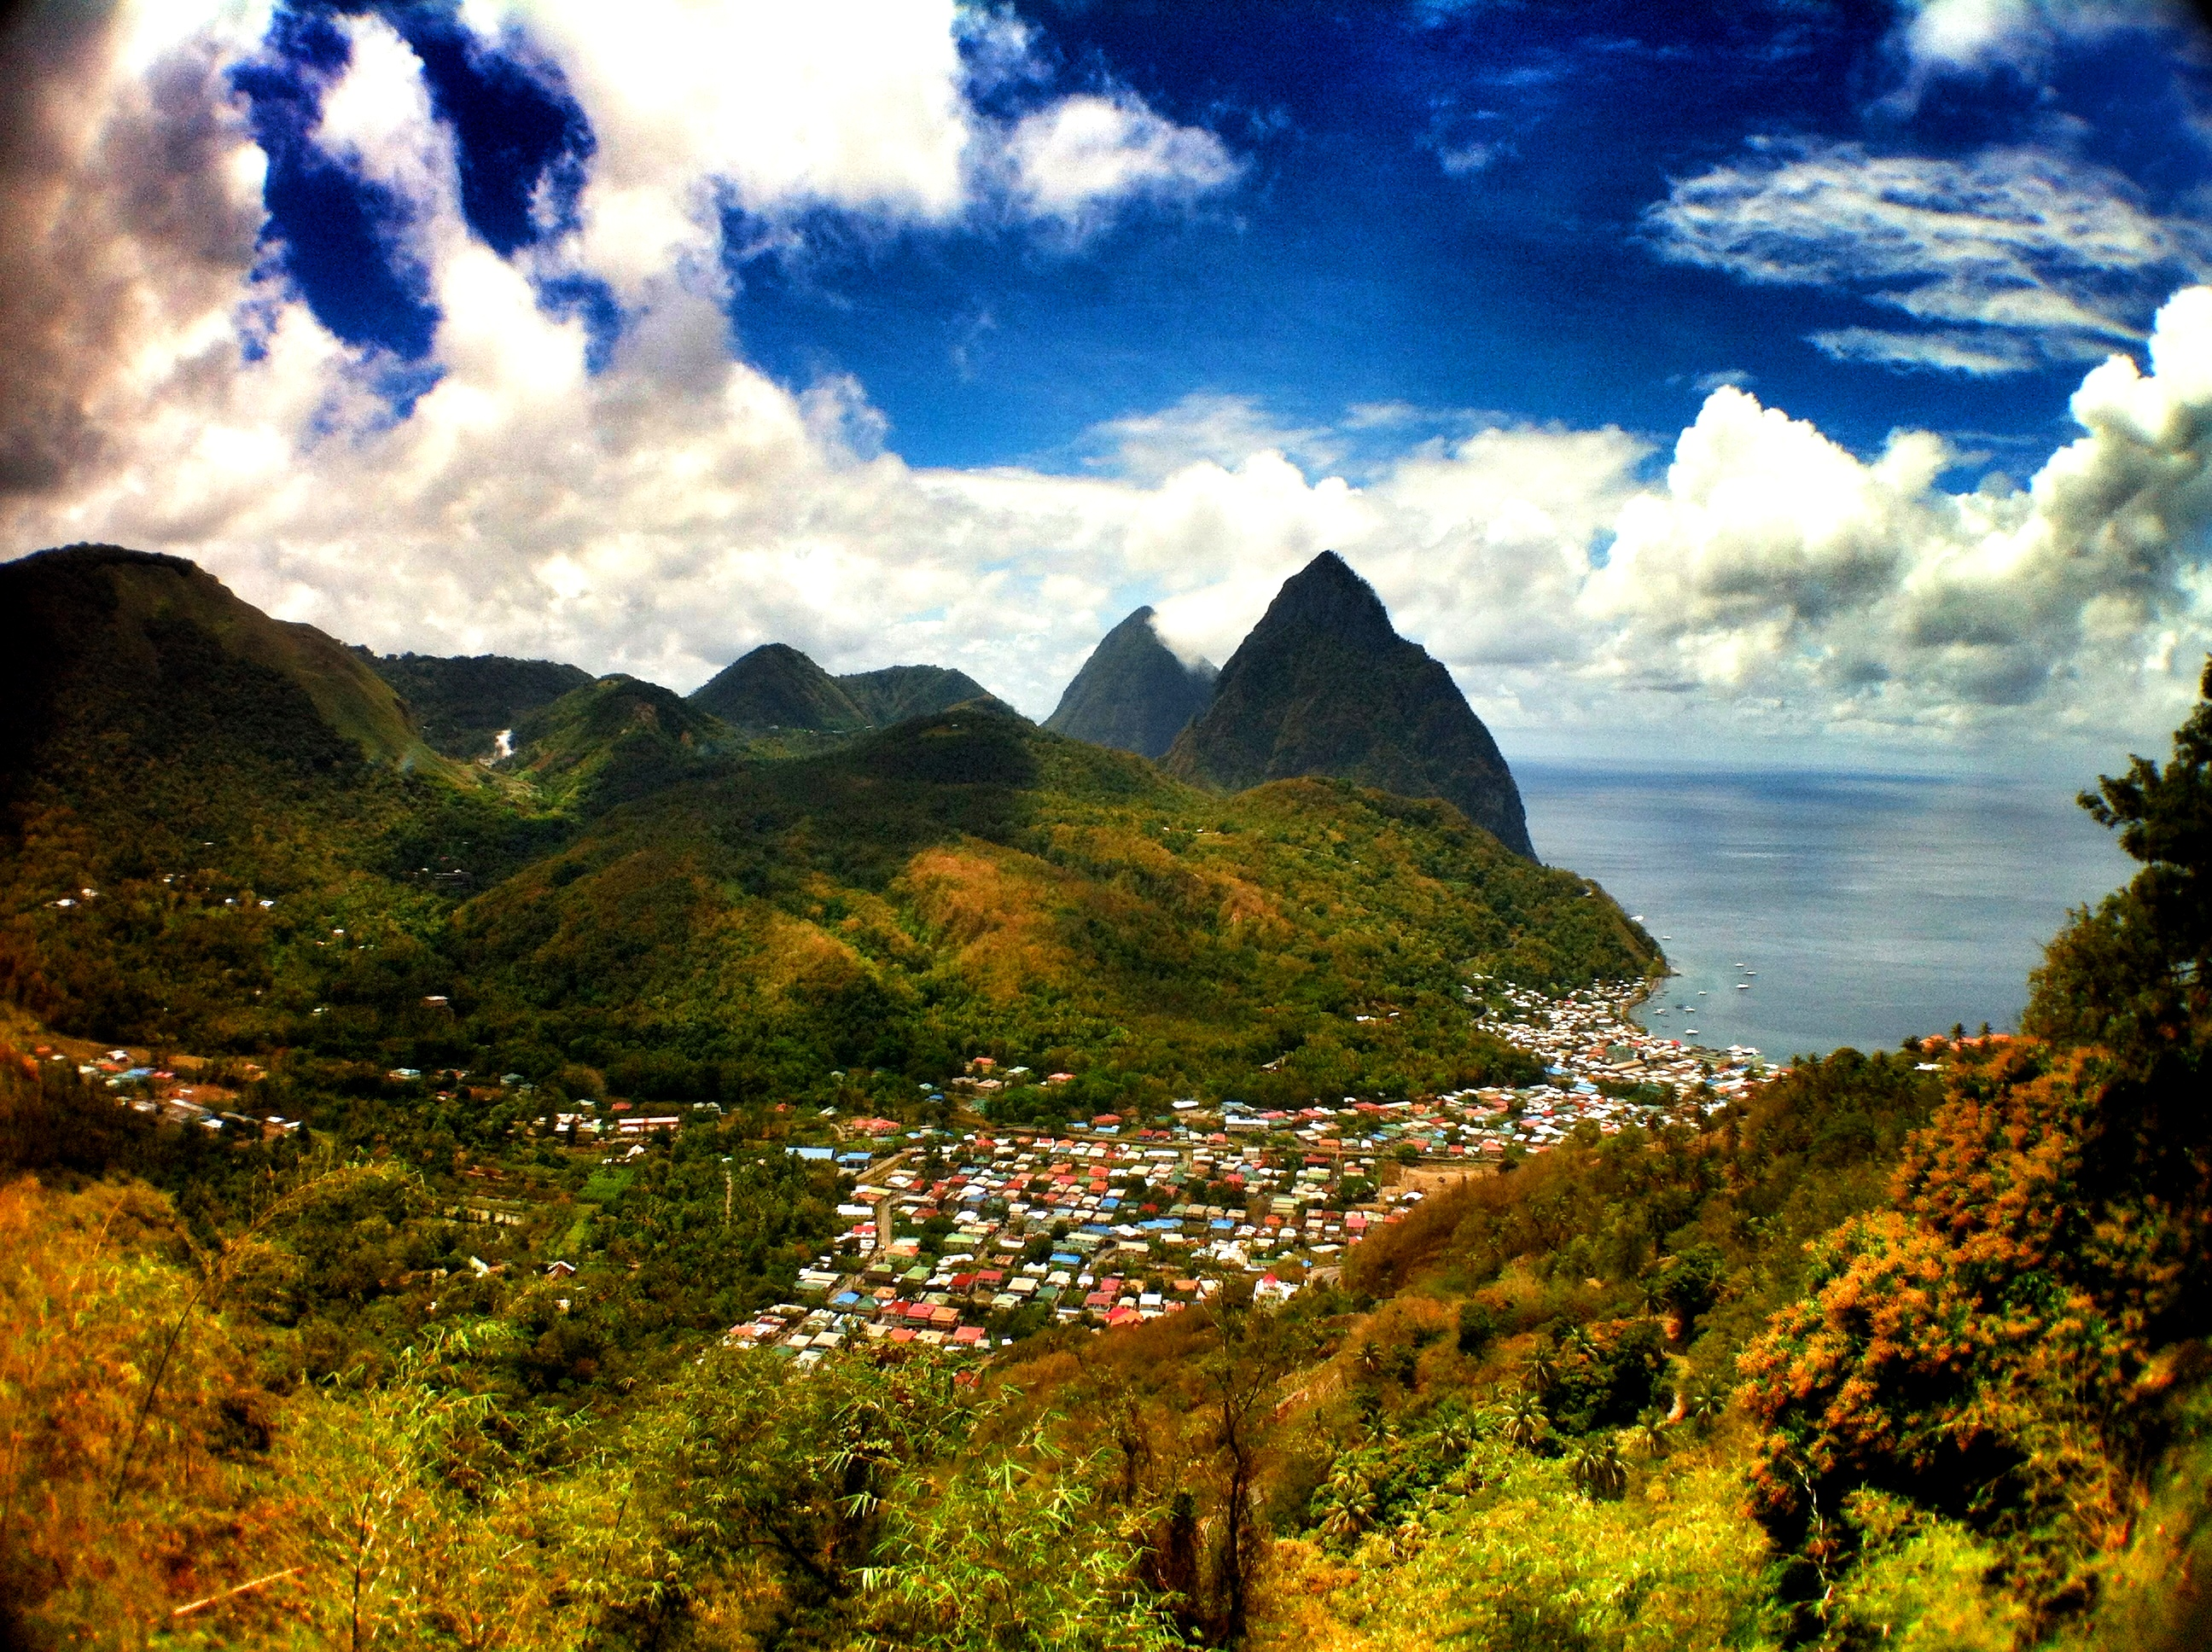 Discovering the Difference Between Traveling and Vacationing While in St. Lucia